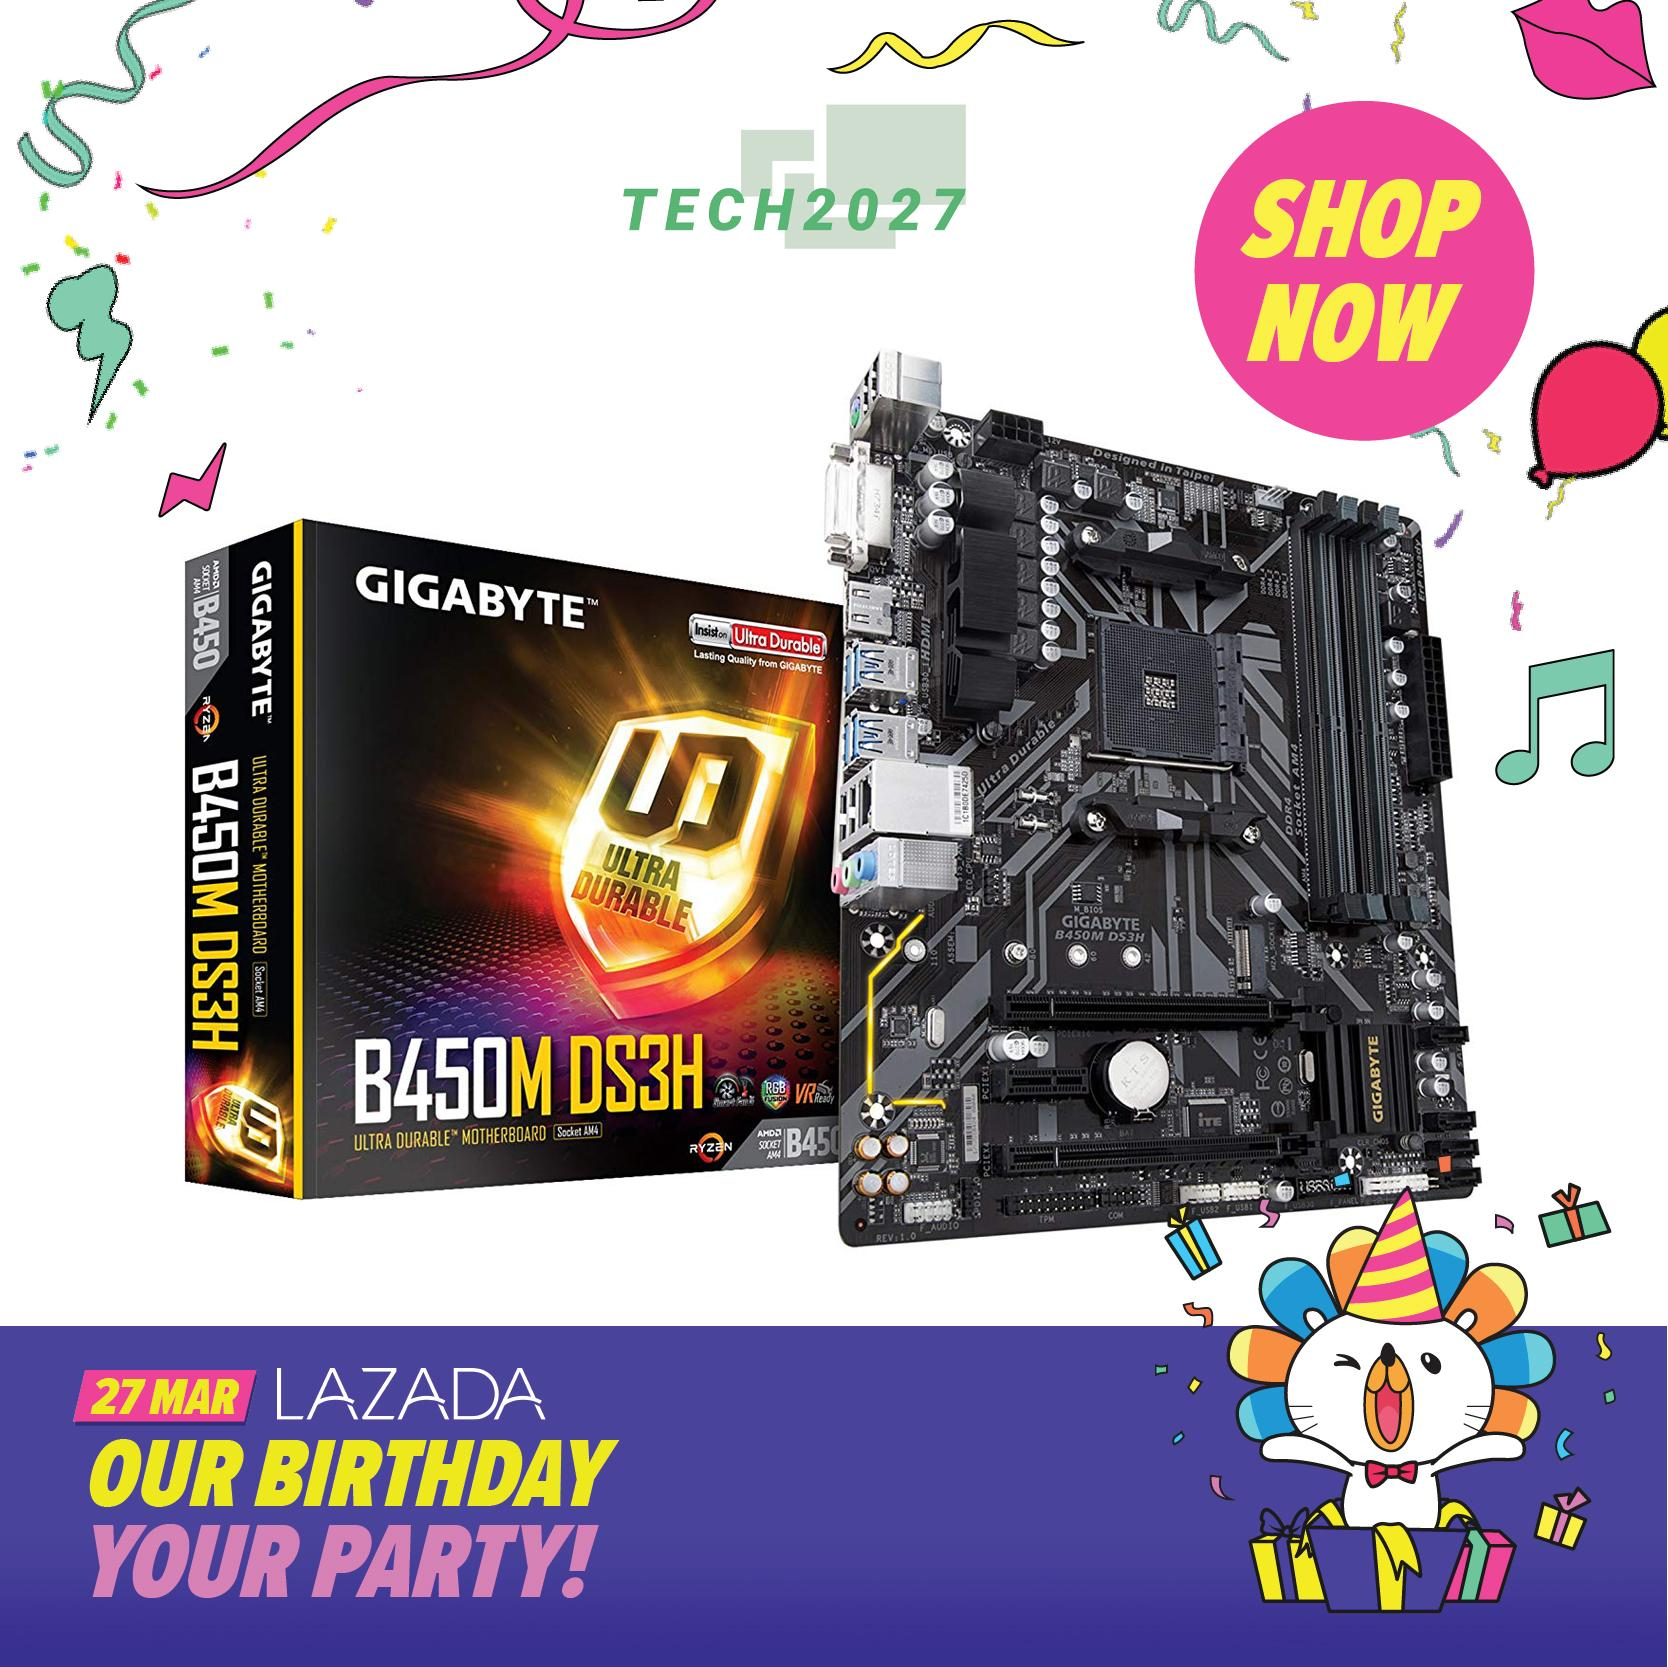 Gigabyte B450m Ds3h Ddr4/amd Ryzen Am4/b450/micro Atx Motherboard By Tech2027.